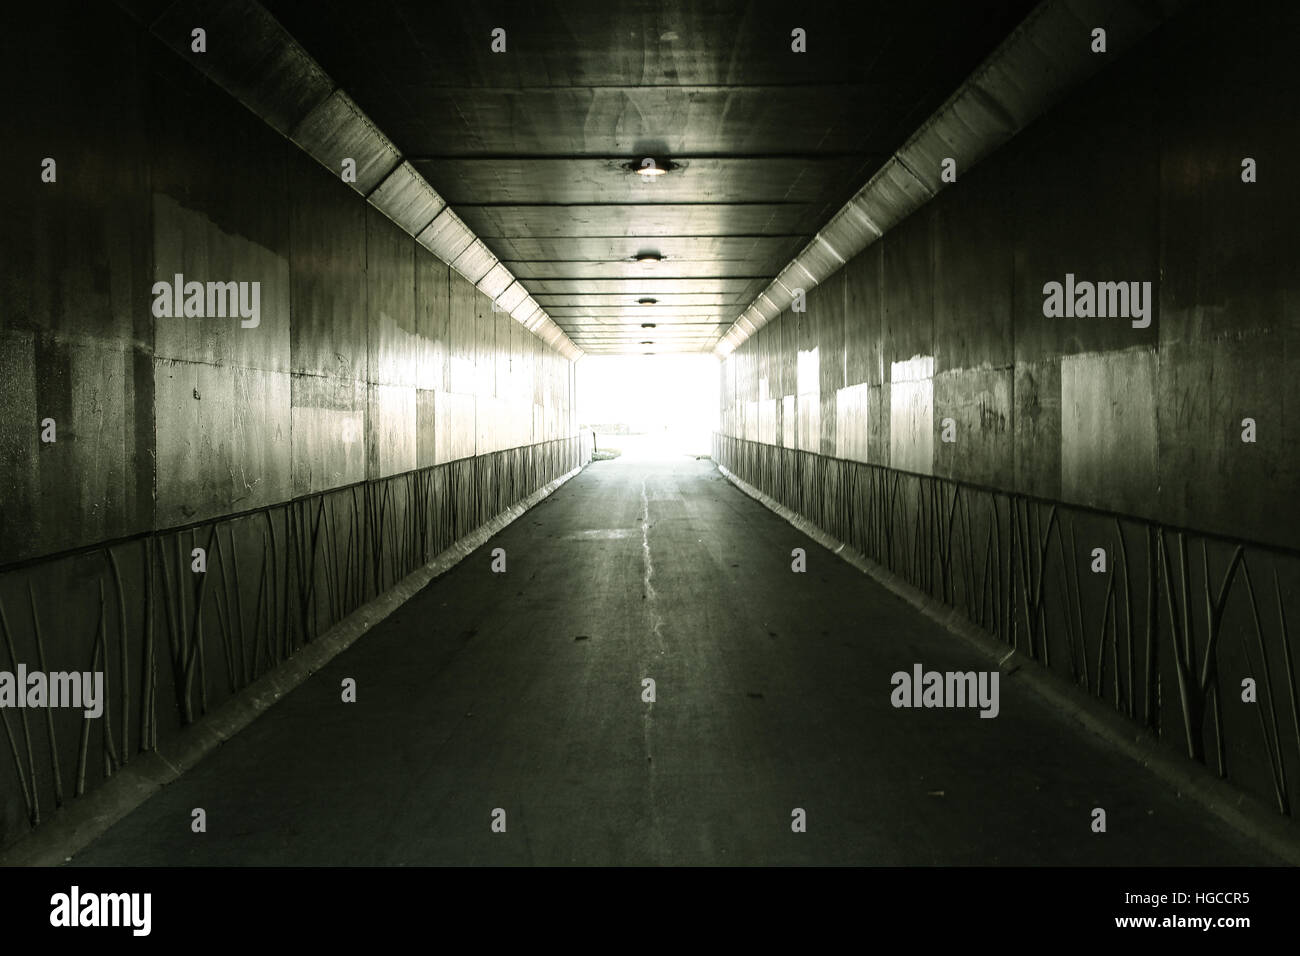 Light At The End Of The Tunnel Pedestrian tunnel illuminated by bright sunlight at the exit - Stock Image